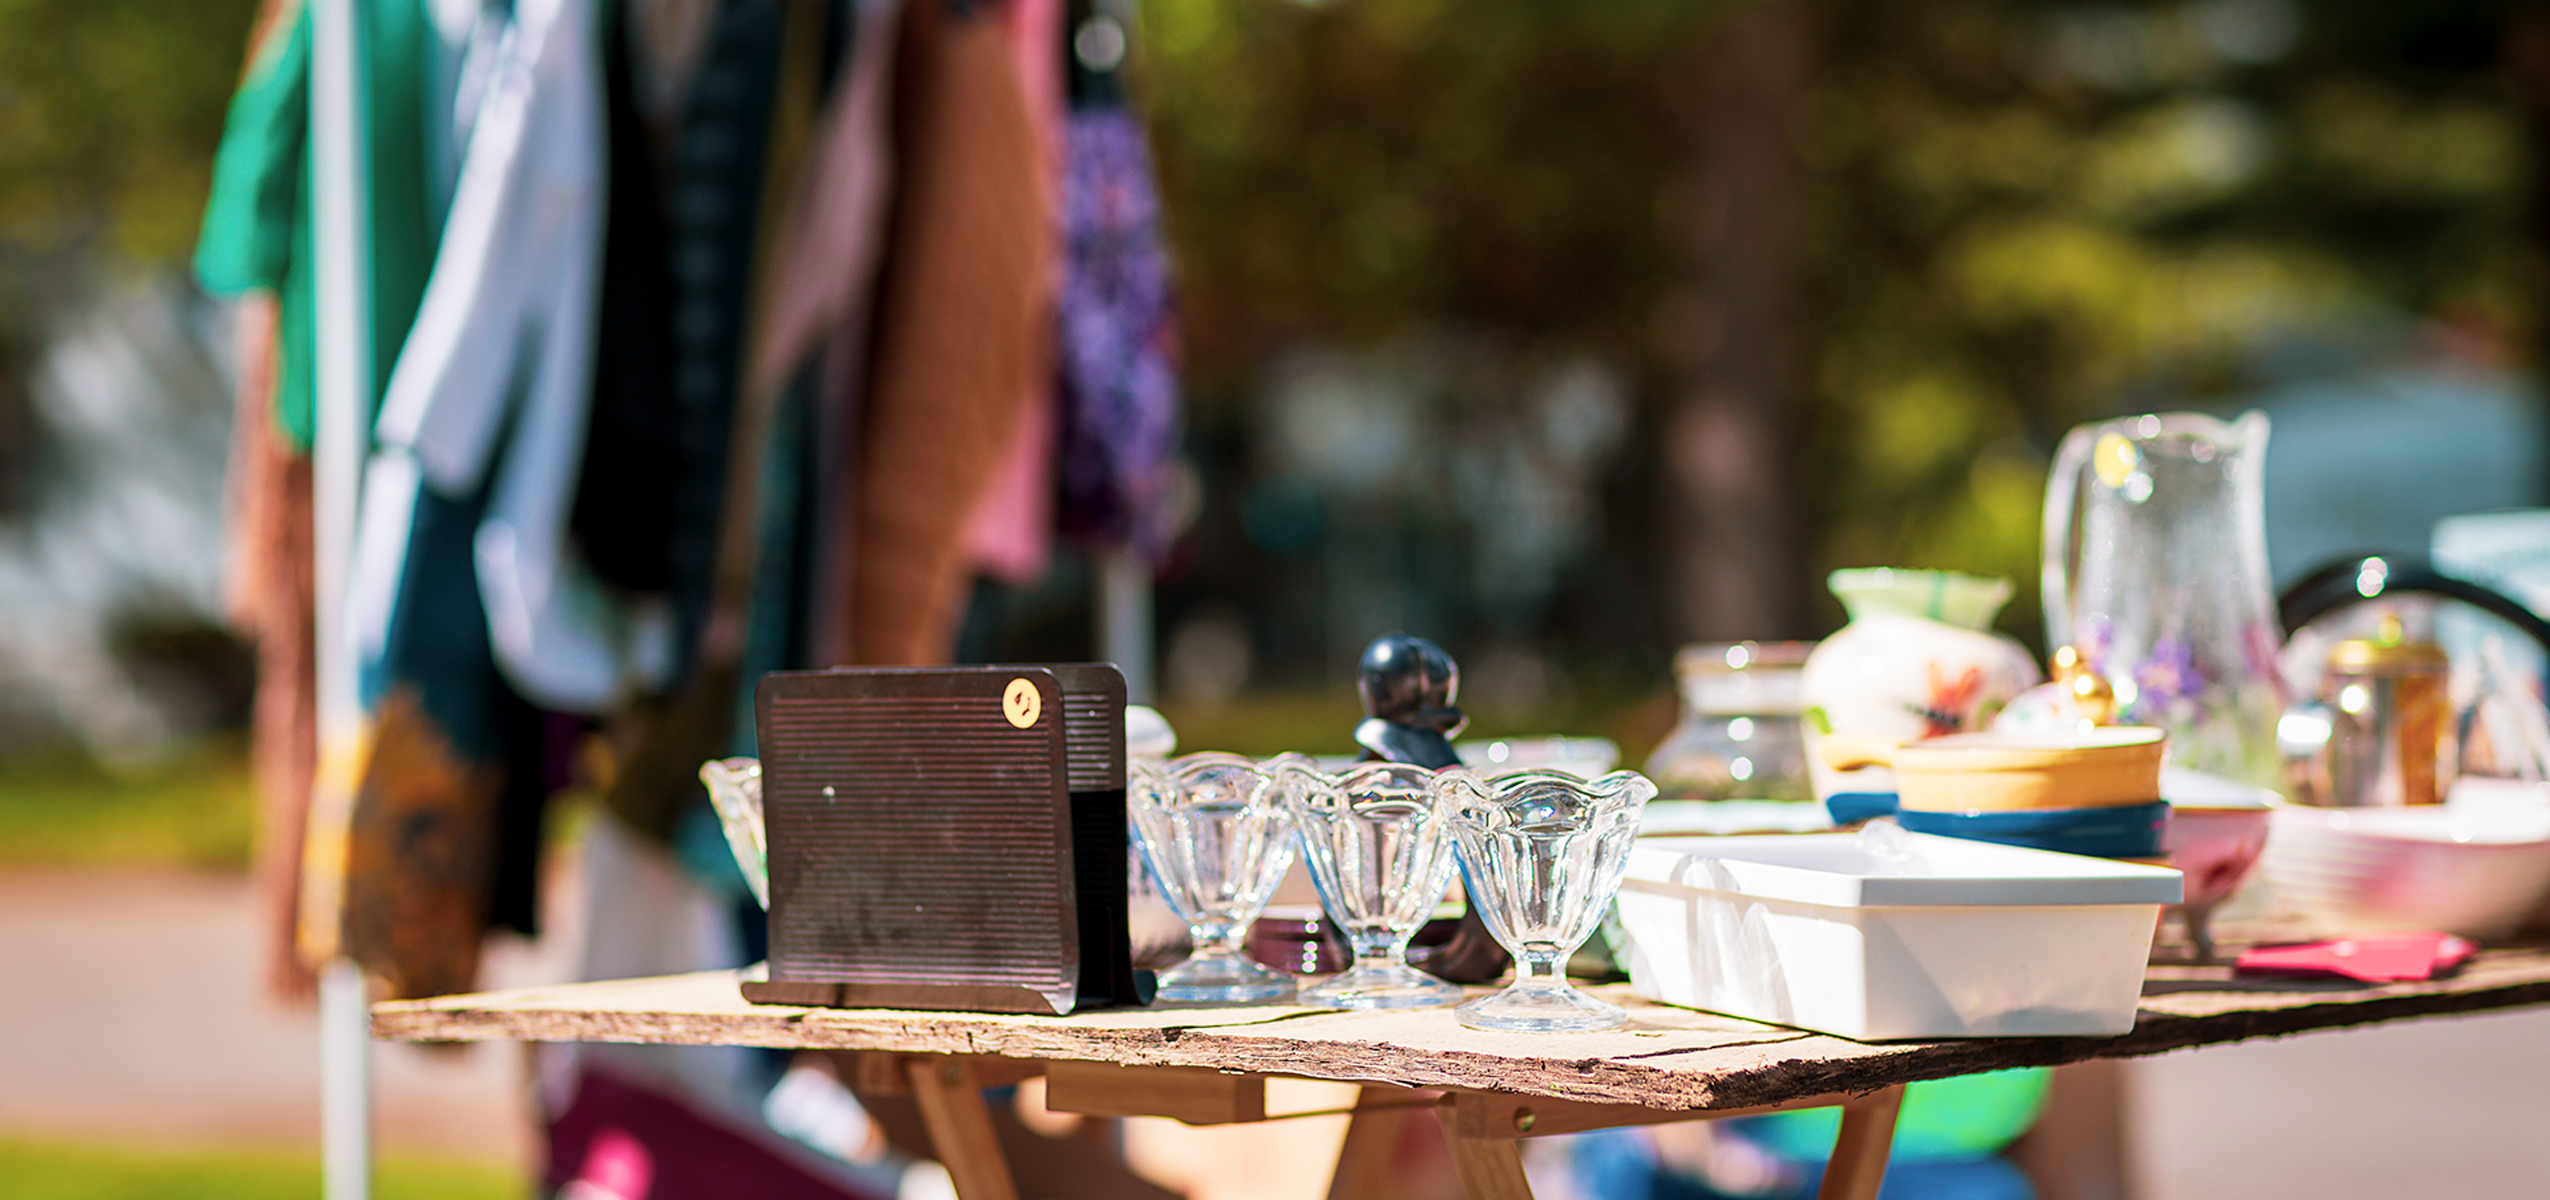 Tips on Hosting a Successful Garage Sale